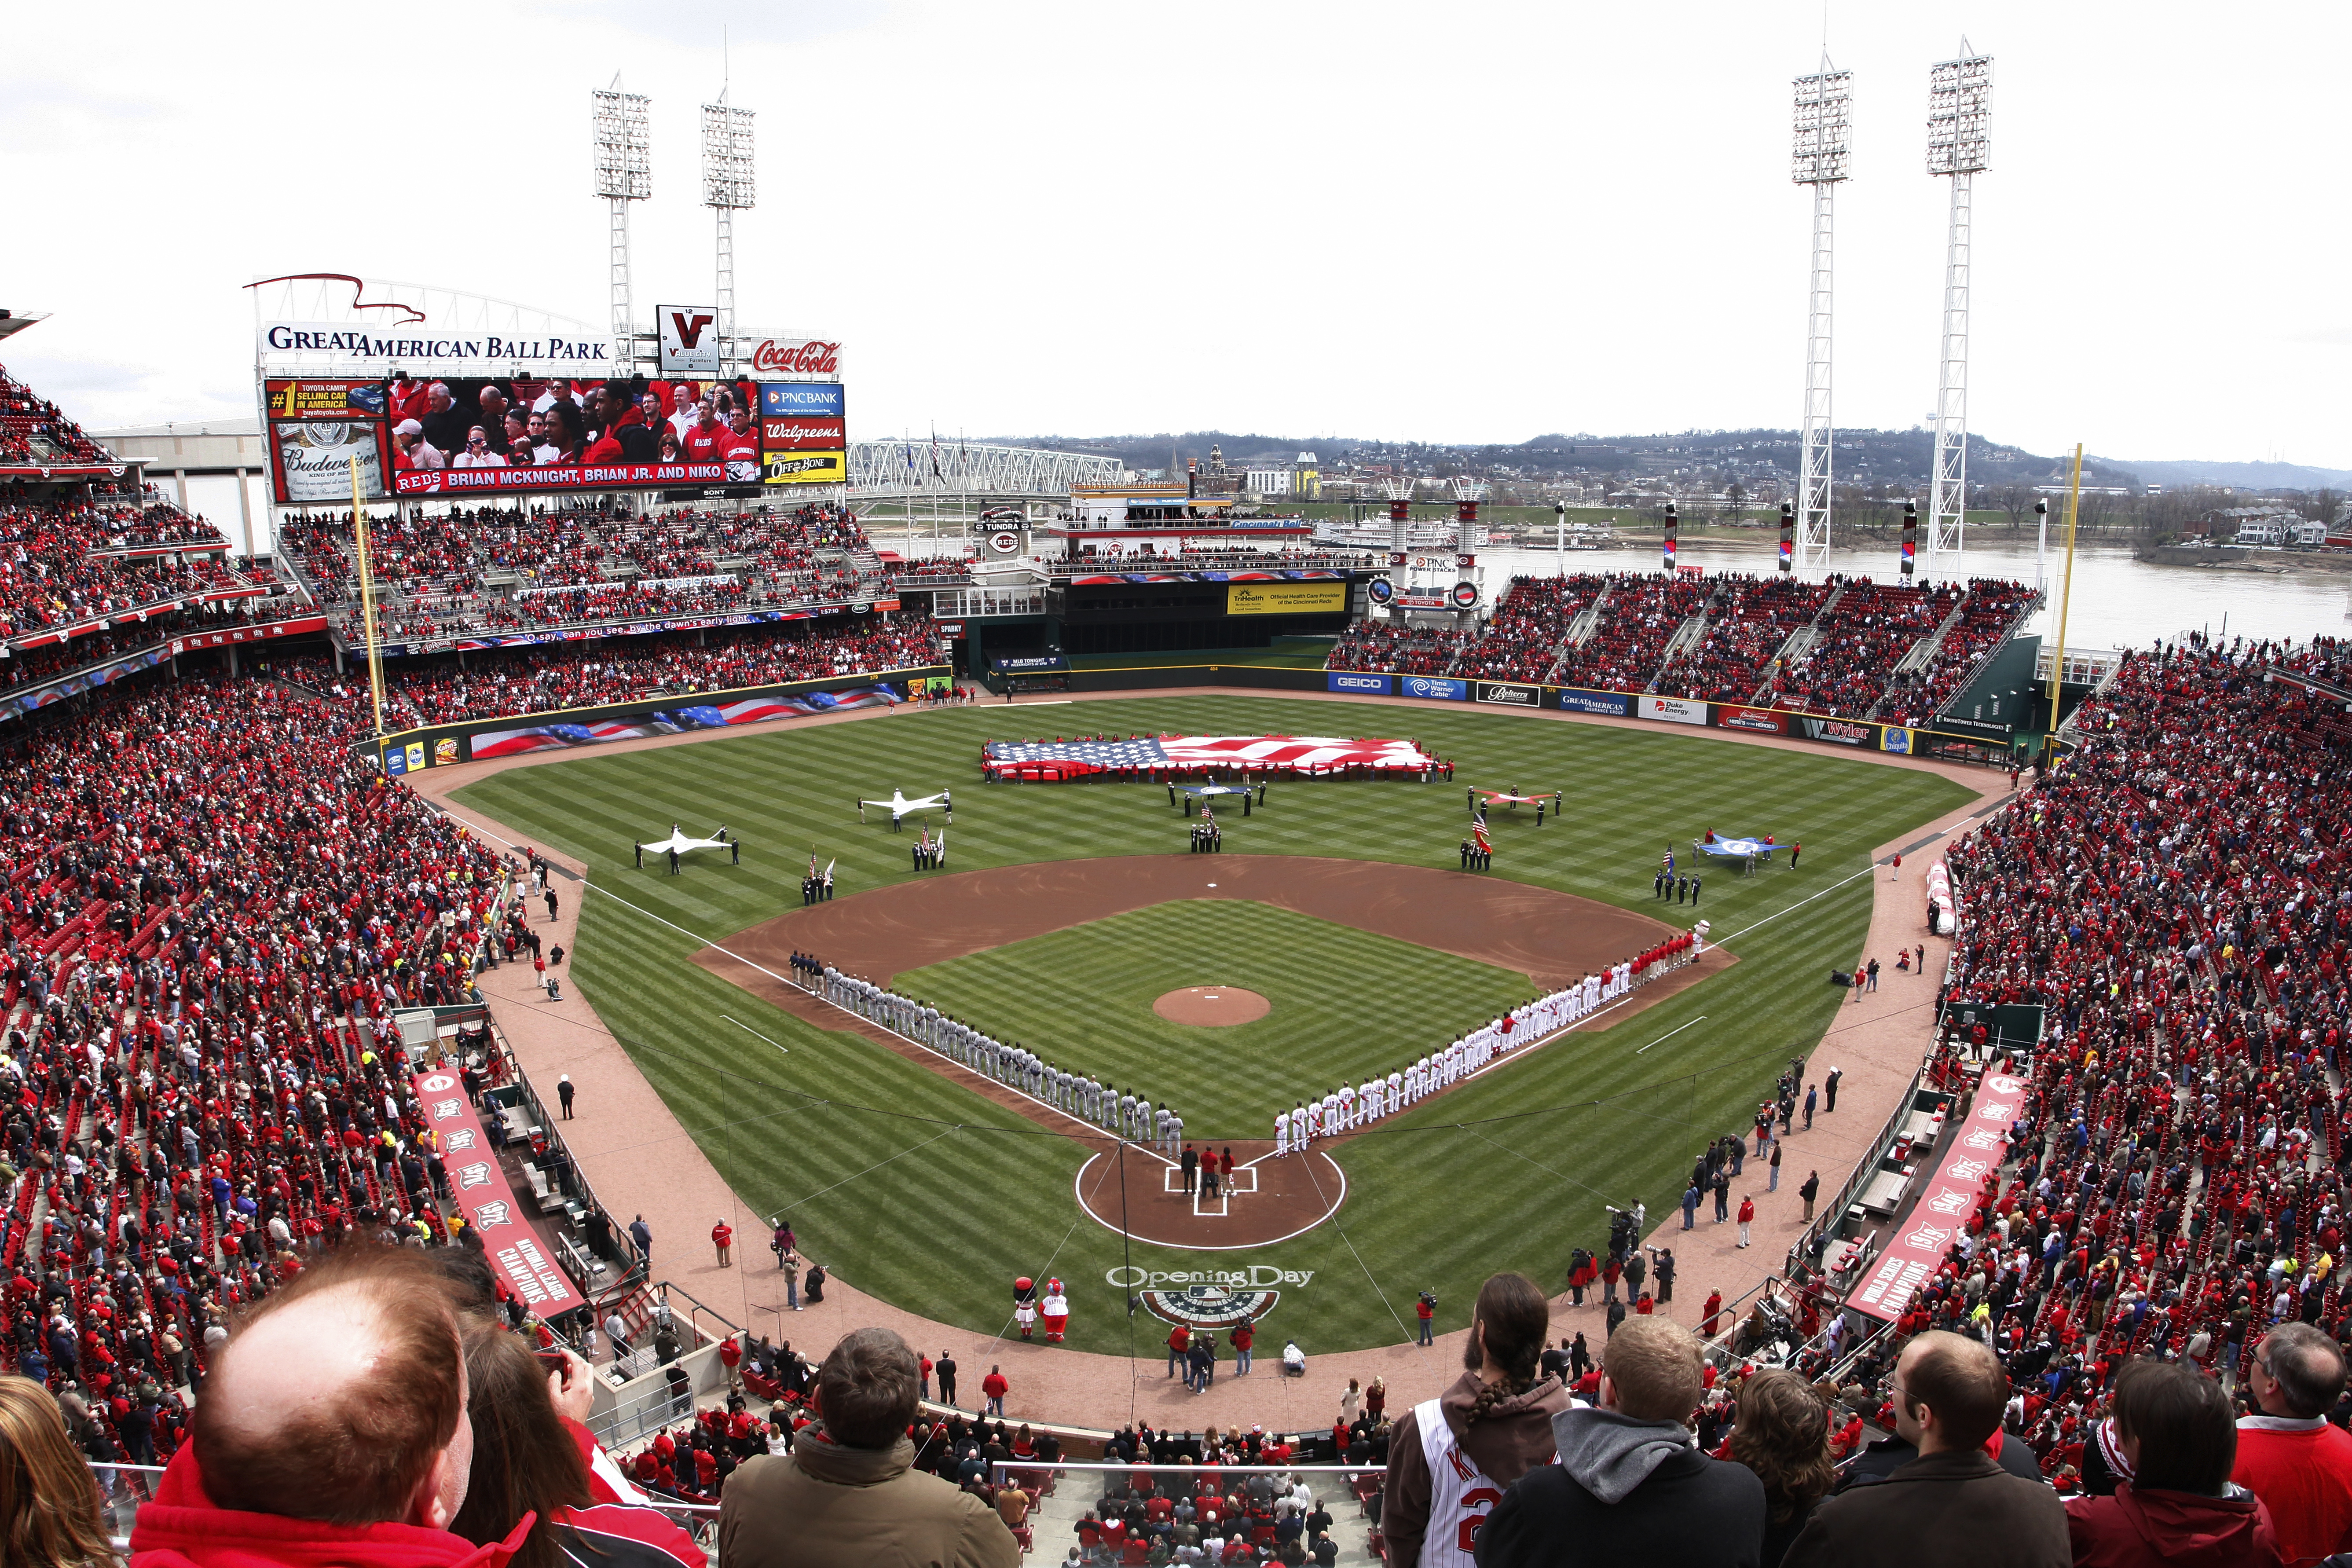 CINCINNATI, OH - MARCH 31: General view during the National Anthem prior to the opening day game between the Cincinnati Reds and the Milwaukee Brewers at Great American Ballpark on March 31, 2011 in Cincinnati, Ohio. (Photo by Joe Robbins/Getty Images)